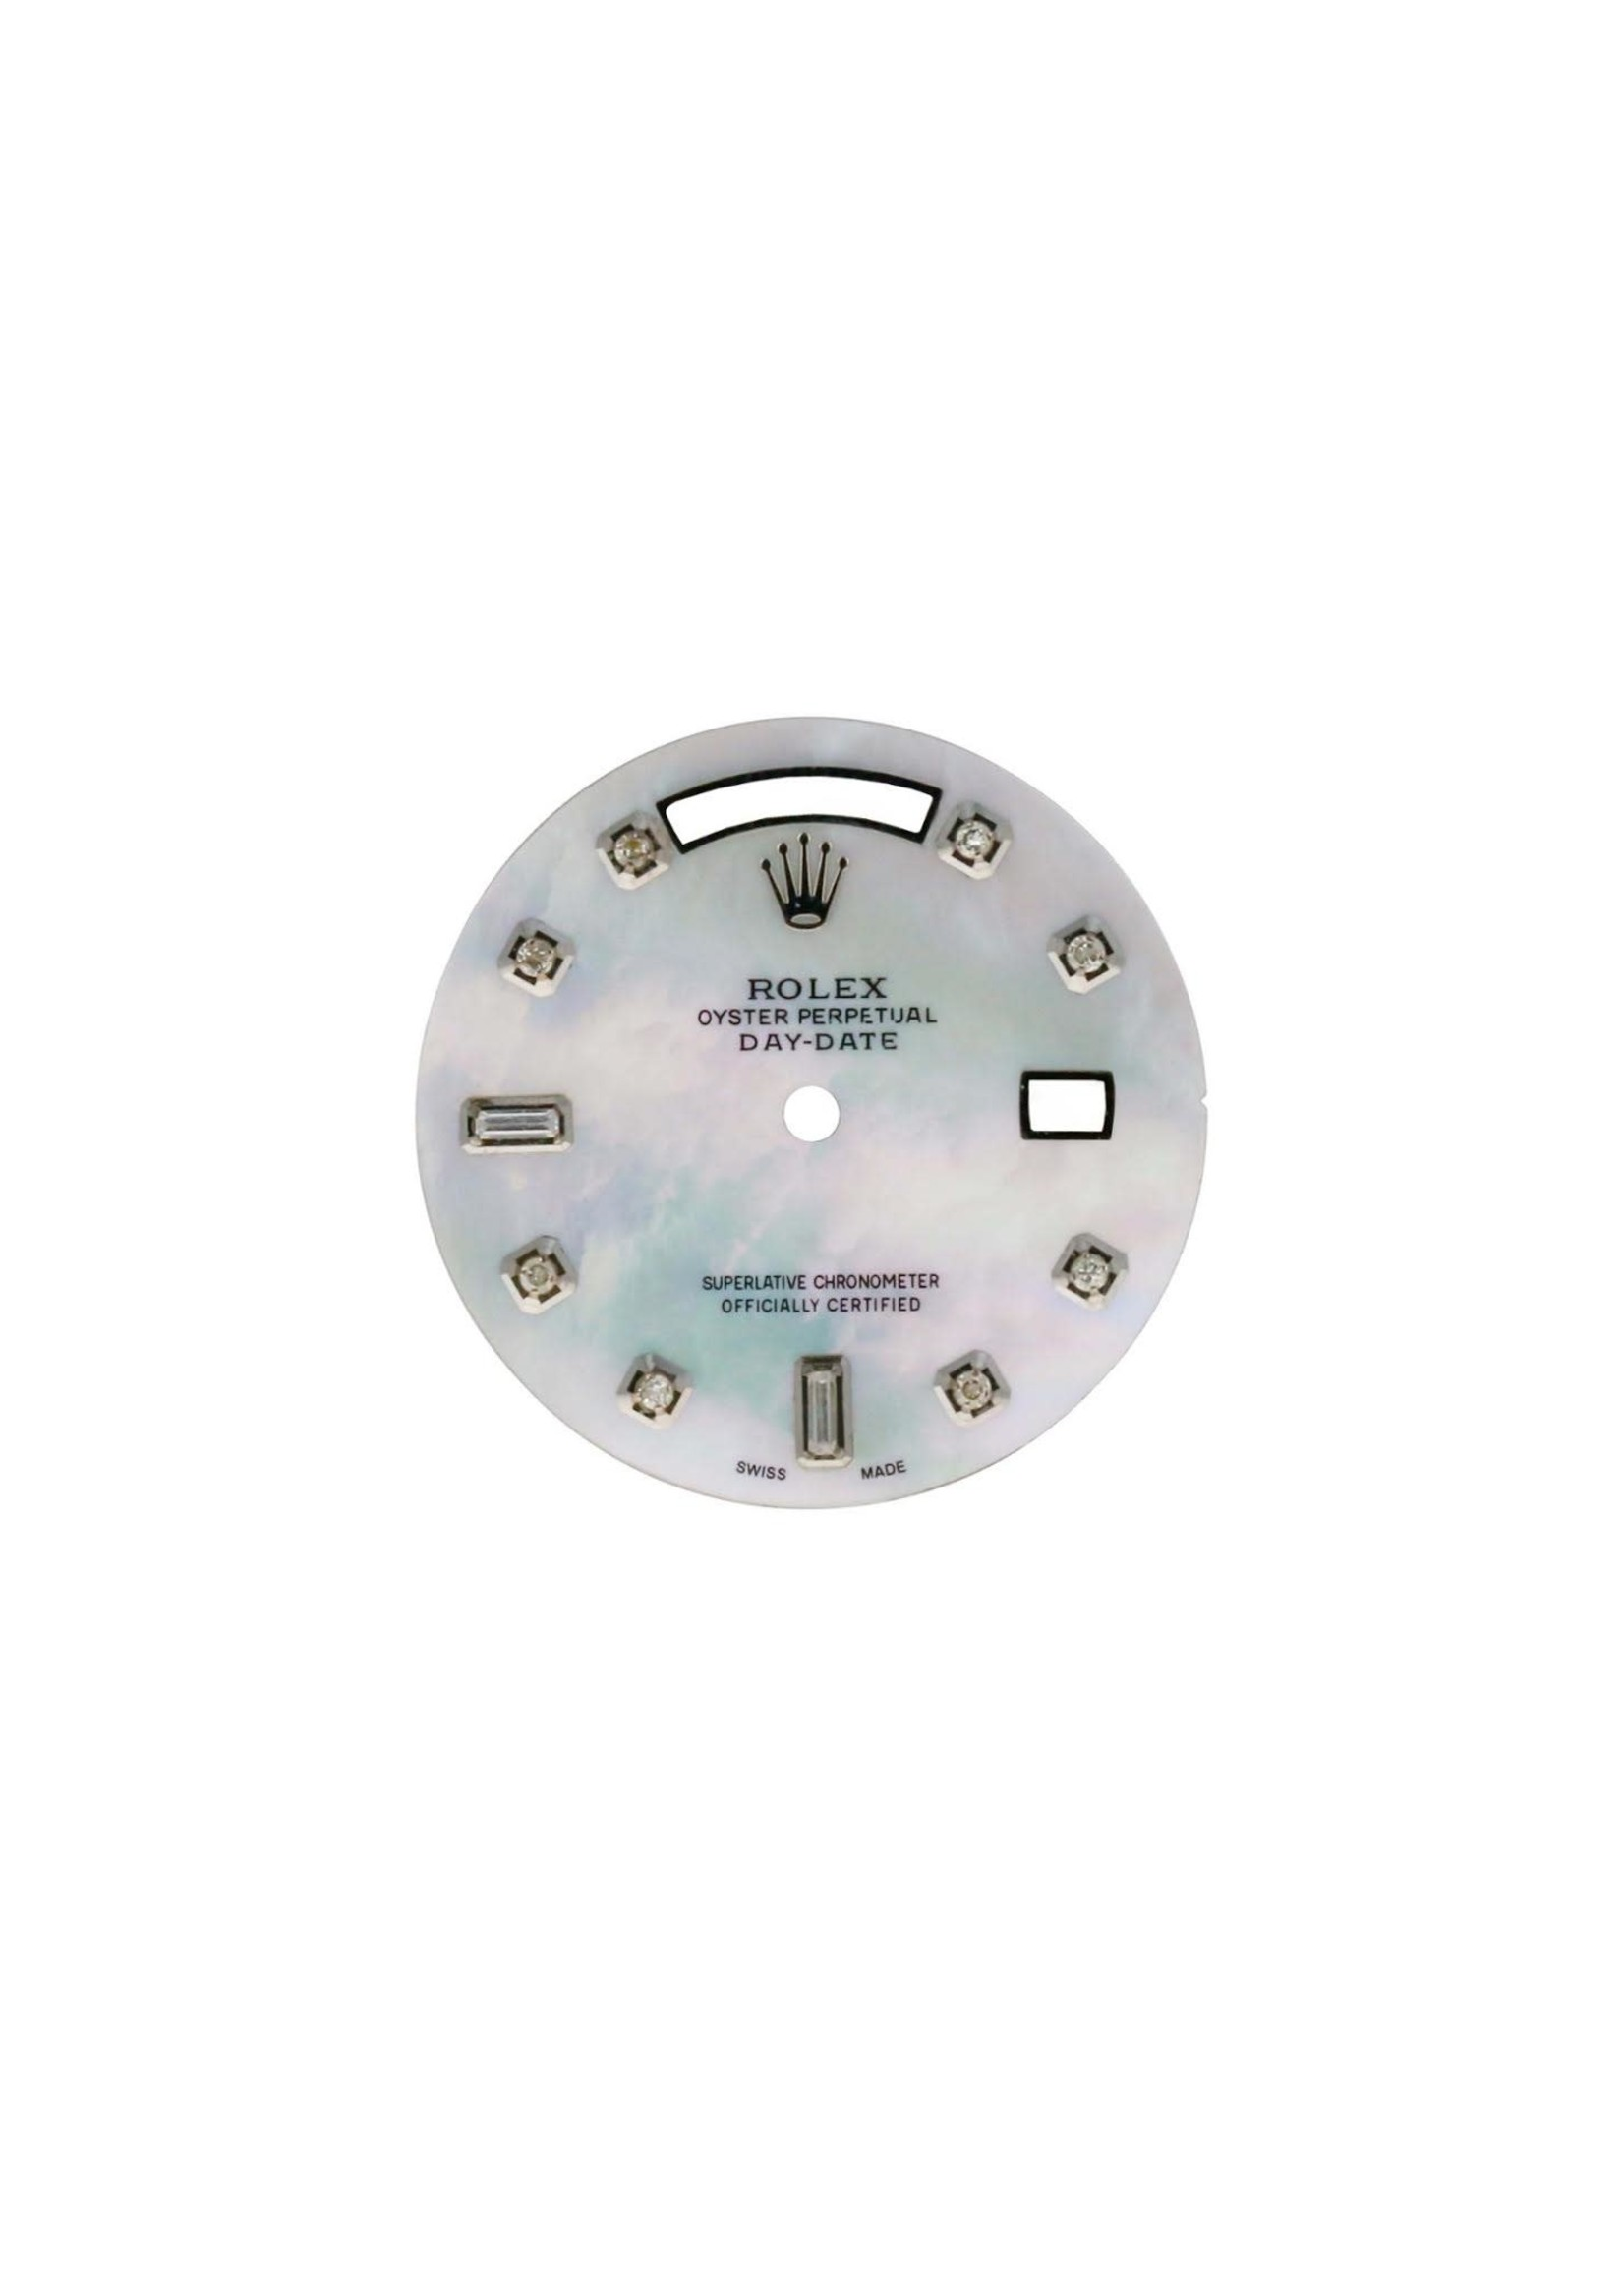 Rolex CUSTOM ROLEX DAY DATE 36MM DIAMOND DIAL MOTHER OF PEARL